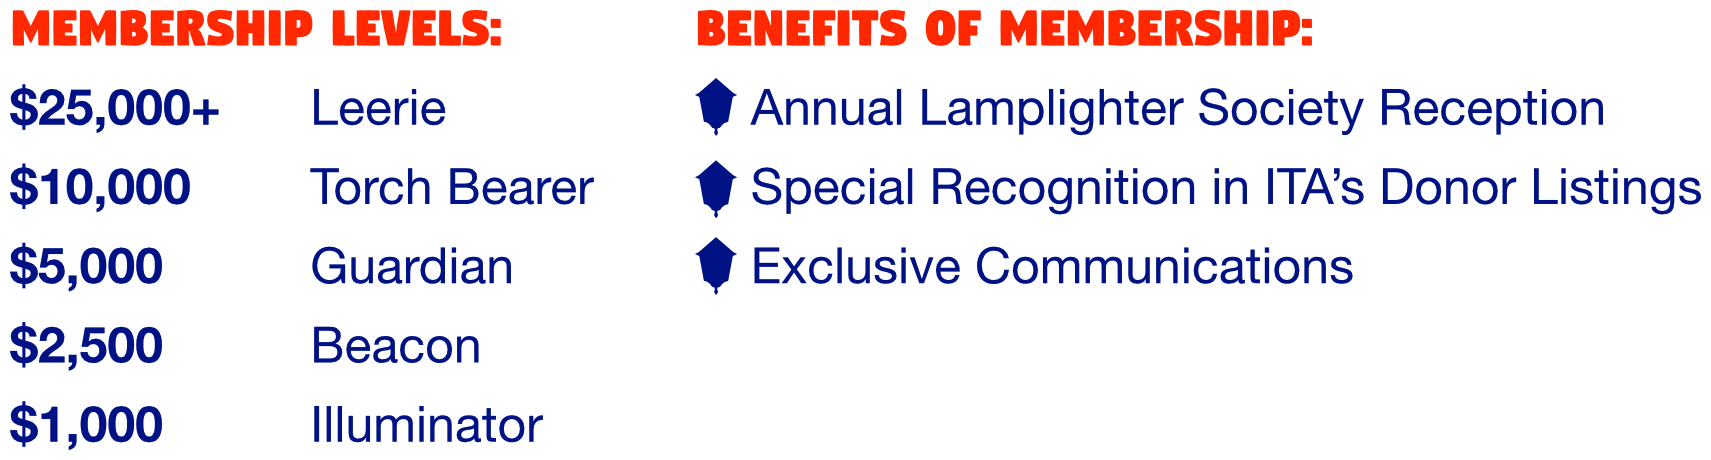 Membership Levels and Benefits: $25,000 and up Leerie, Annual Lamplighter Society Reception. $10,000 Torch Bearer, Special Recognition in ITA's Donor Listings. $5,000 Guardian, Exclusive Communications. $2,500 Beacon. $1,000 Illuminator.